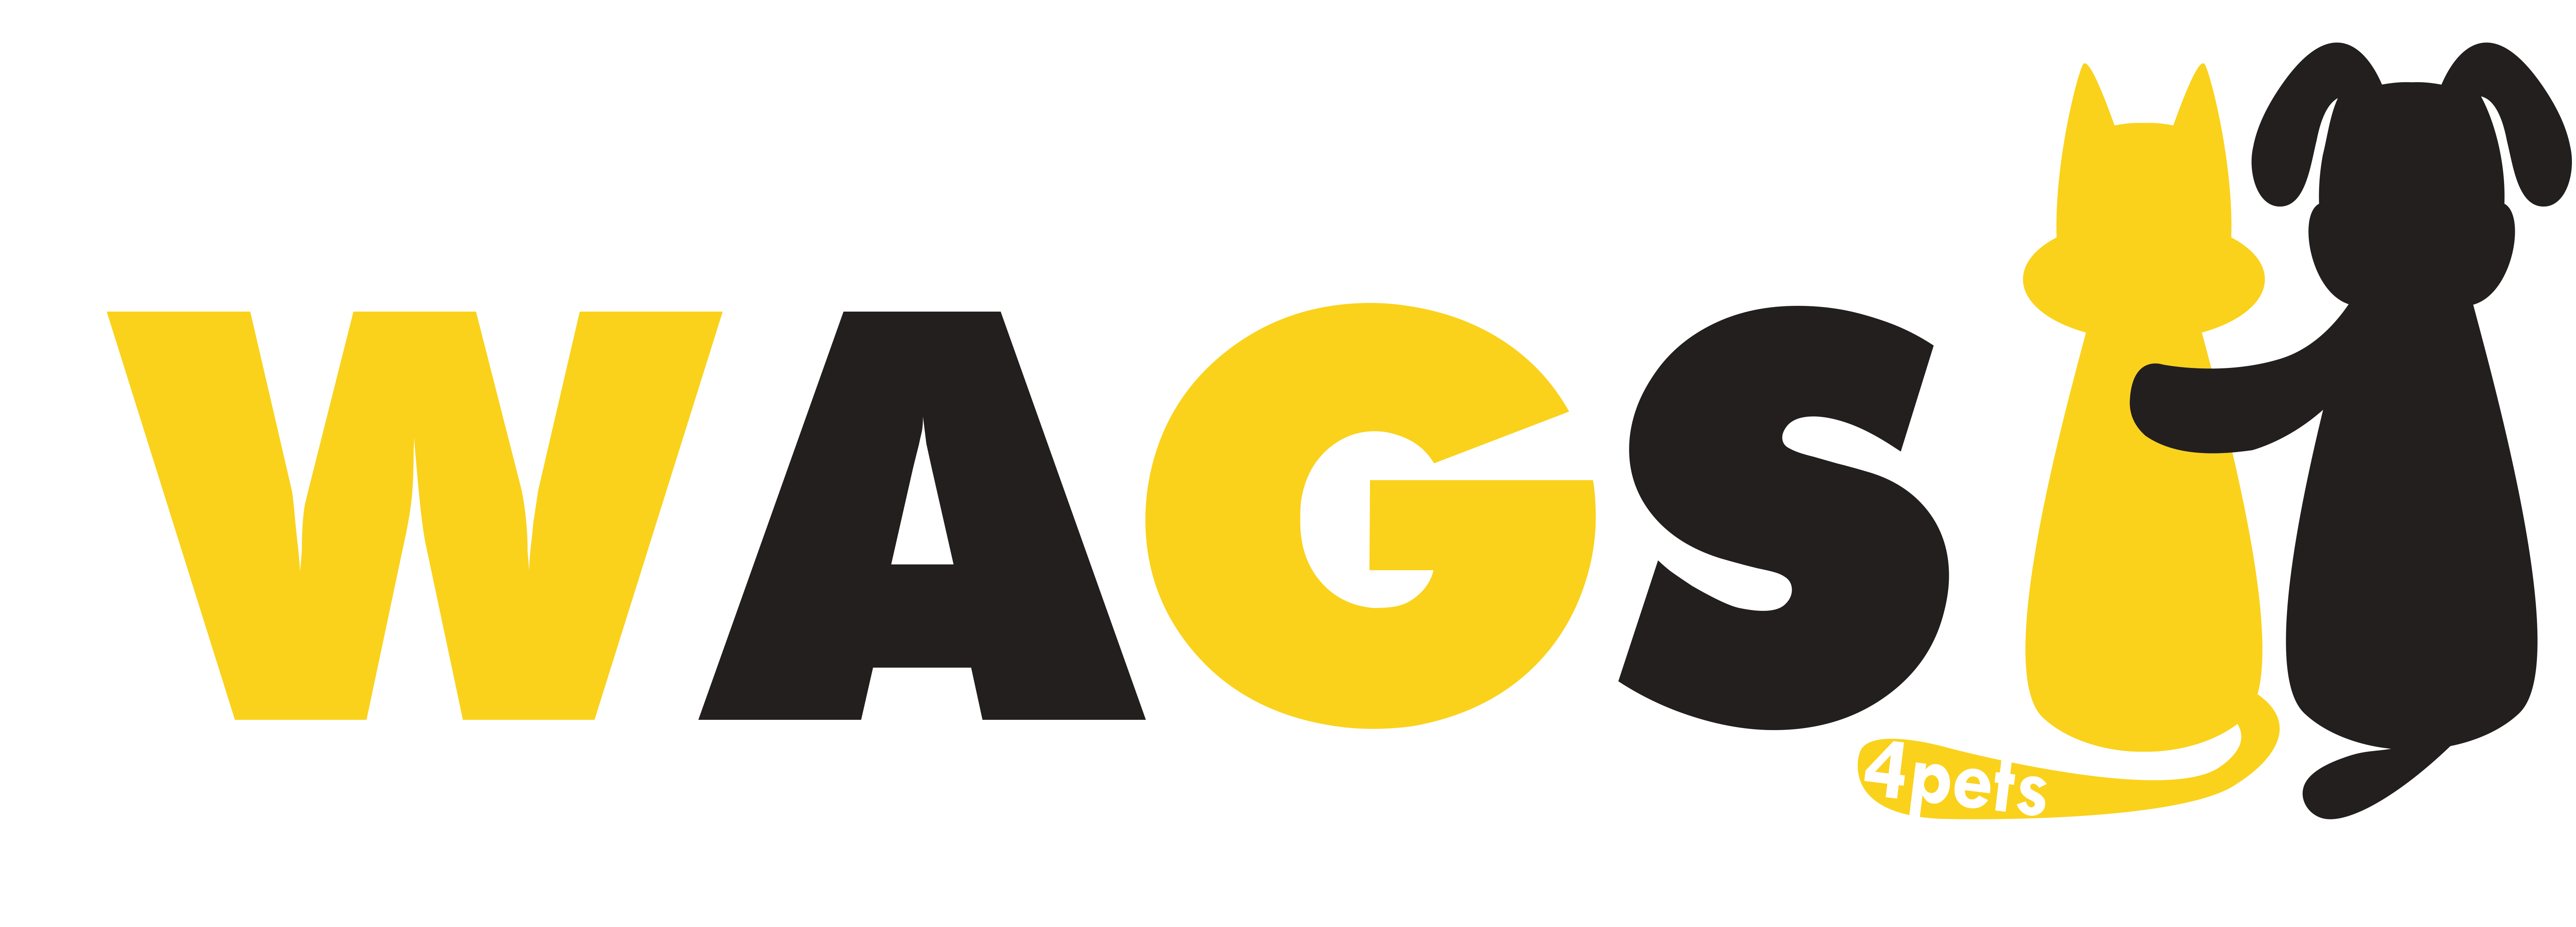 Wags4pets